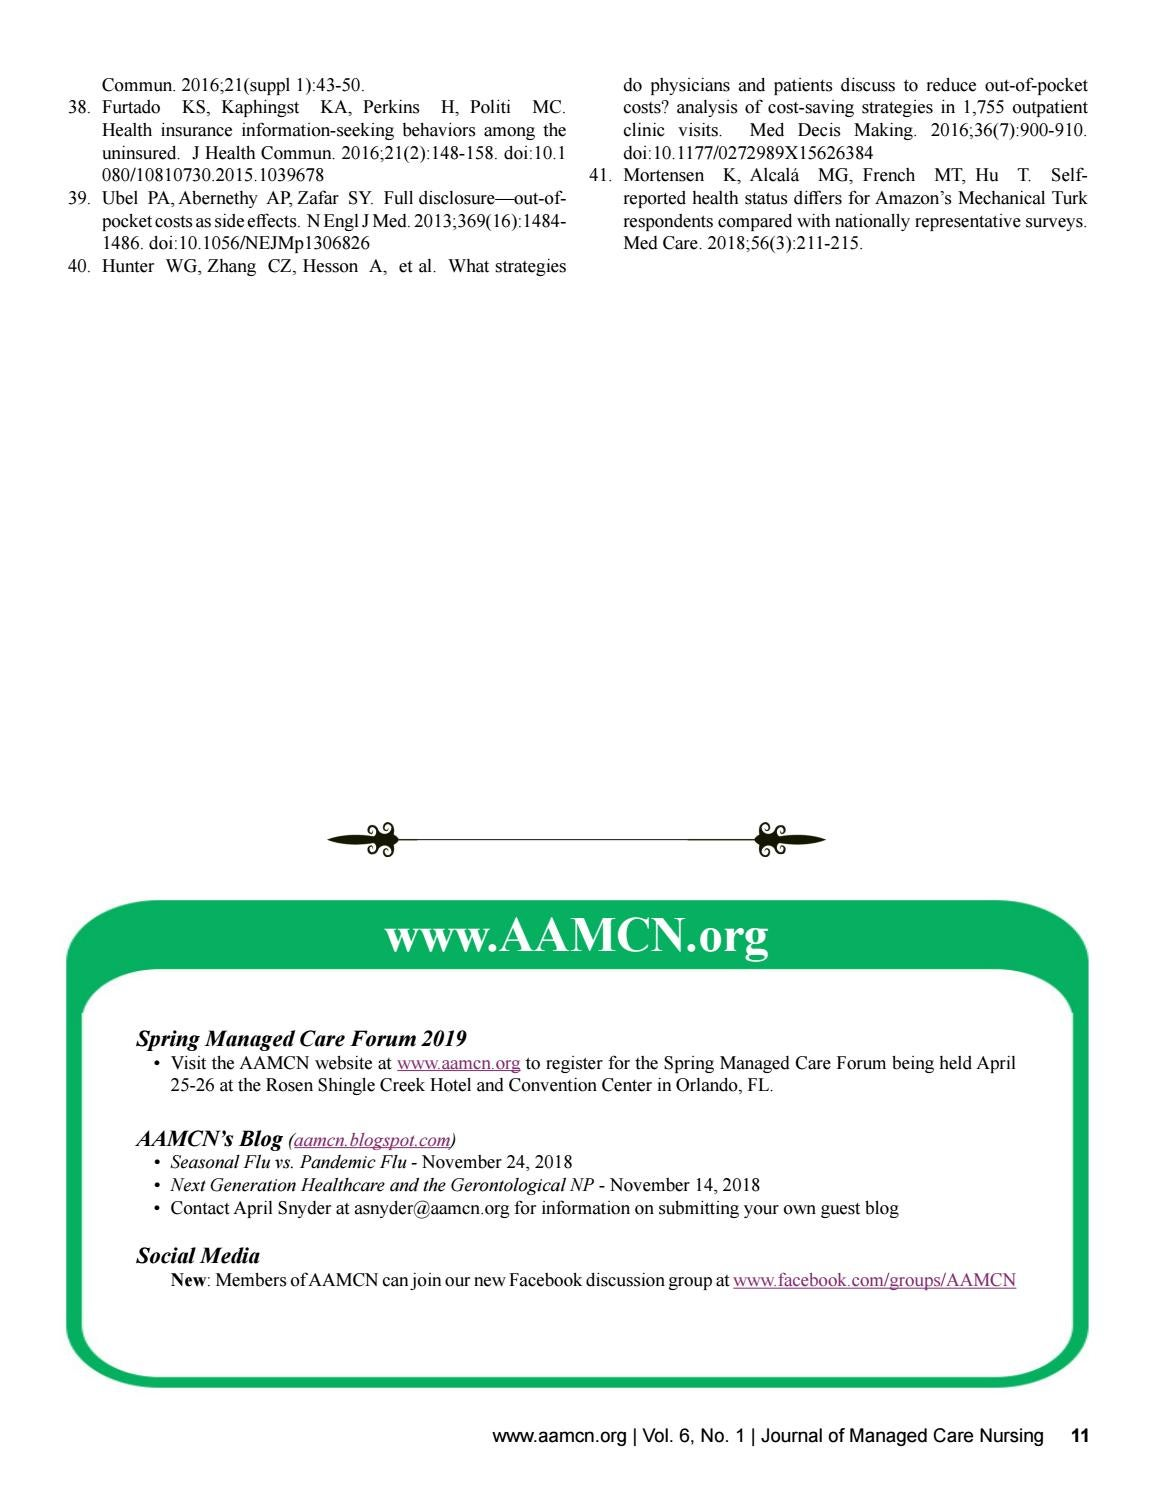 Journal of Managed Care Nursing, Volume 6, Number 1 by